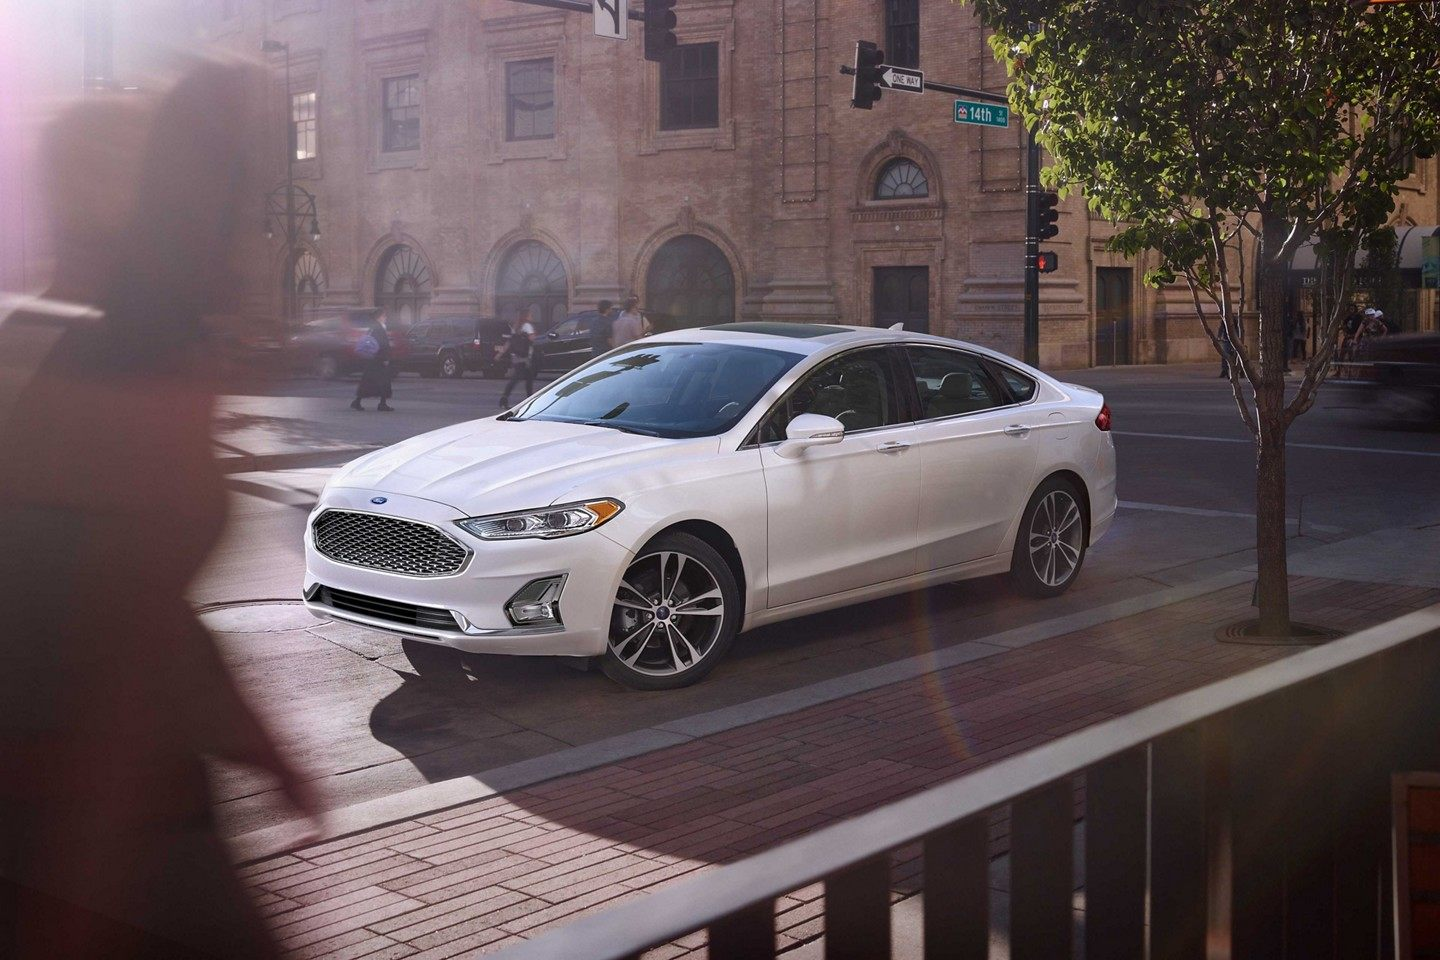 2019 Ford Fusion Front White Exterior.jpeg